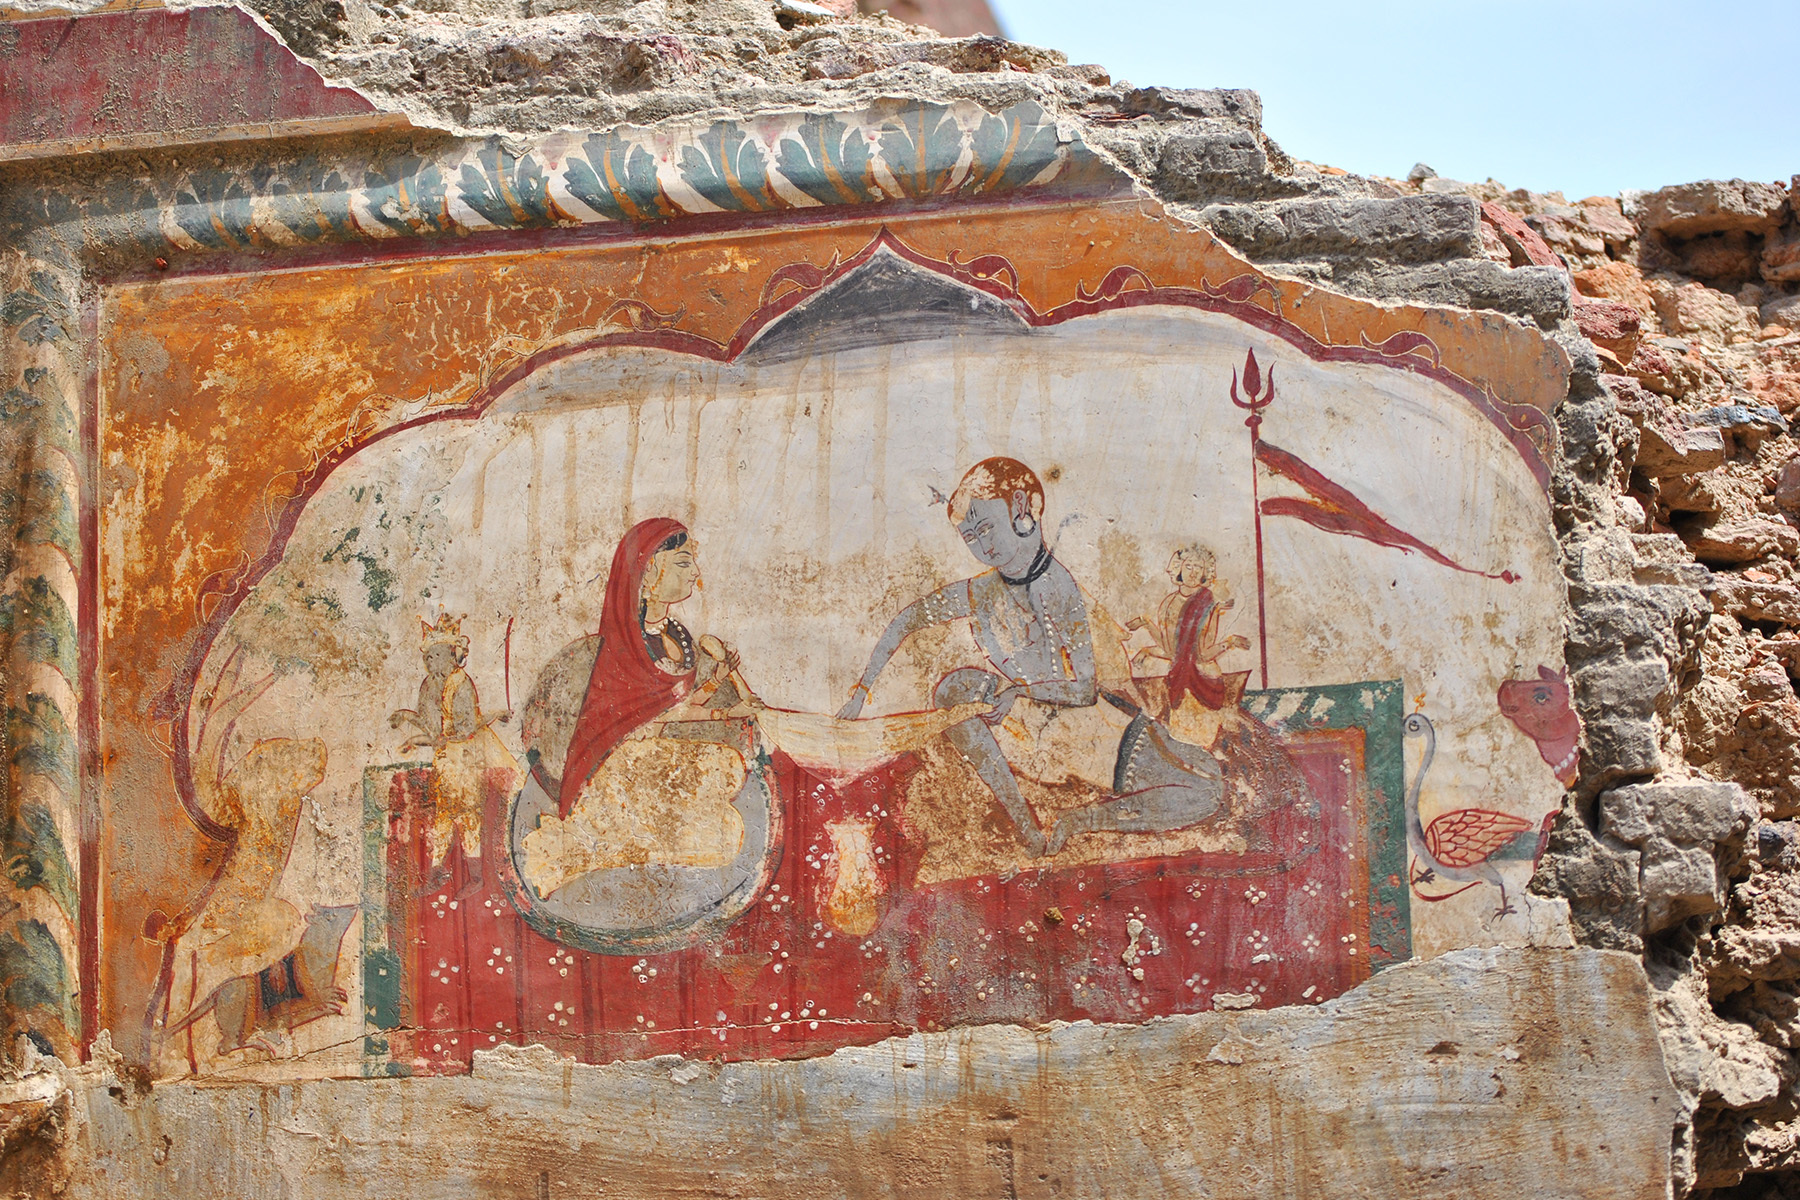 The interior and facades were painted with different subjects, including the gods and goddesses of the Vedic pantheon.